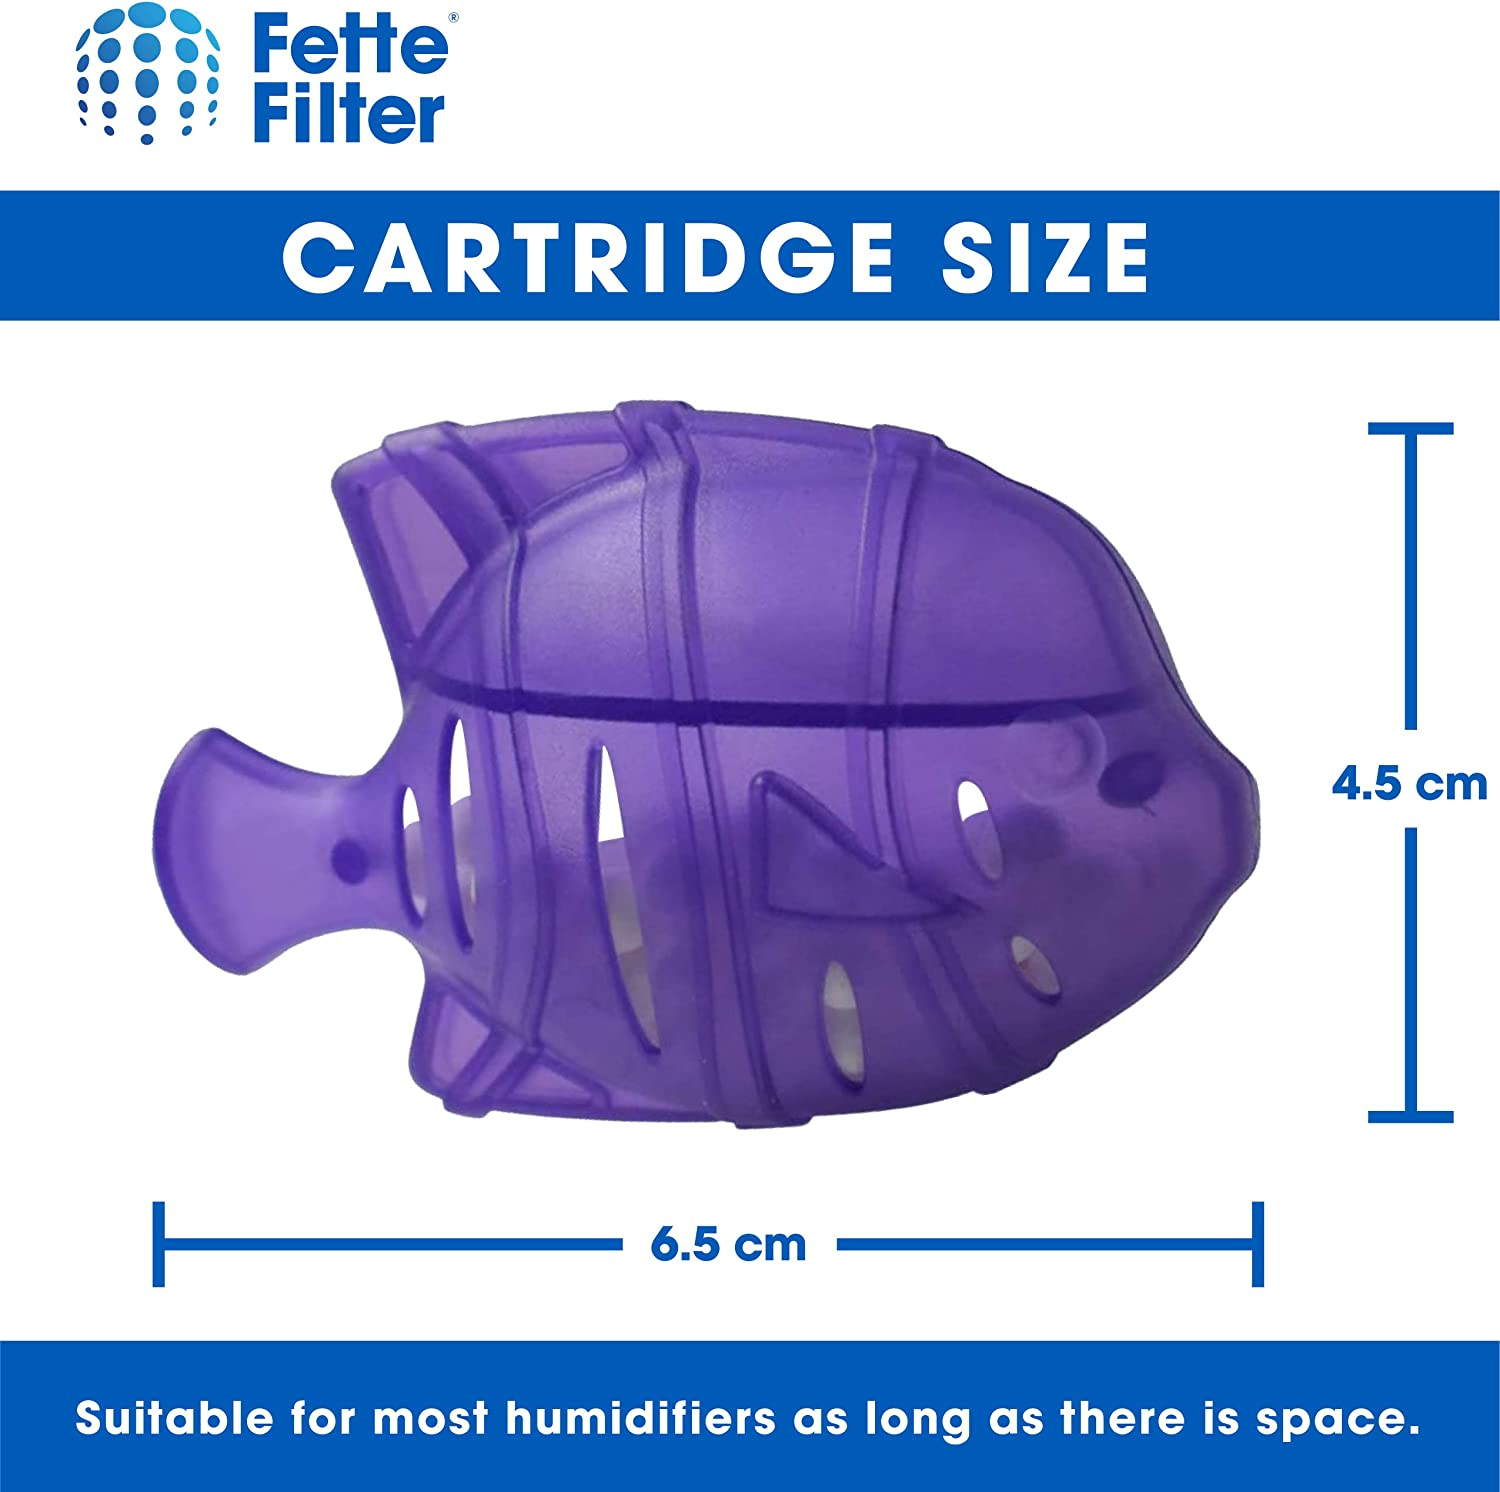 Compare to Protec Kaz PC1F Adorable Warm /& Cool Mist Humidifiers Tanks and Fish Tanks Universal Humidifier Tank Cleaner Compatible with Drop Fette Filter Pack of 4 Droplet